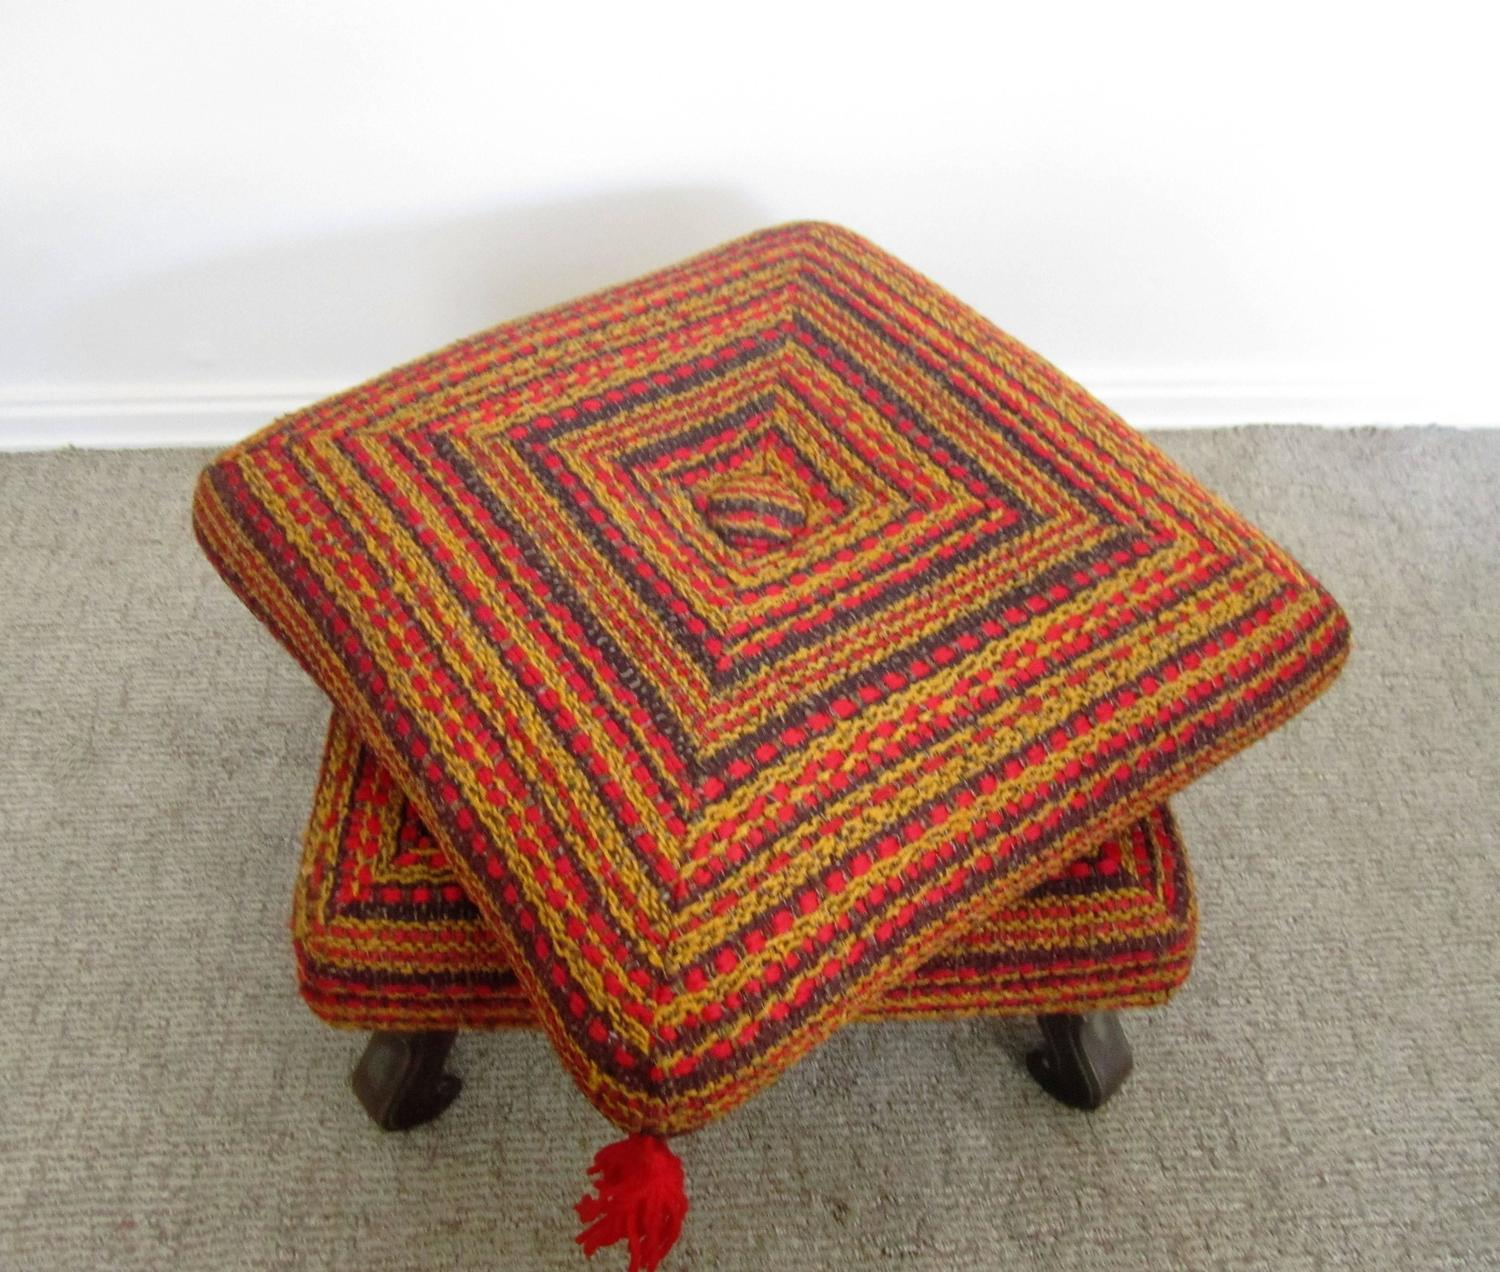 Vintage Colorful Ottoman, Bench Or Stool For Sale At 1stdibs